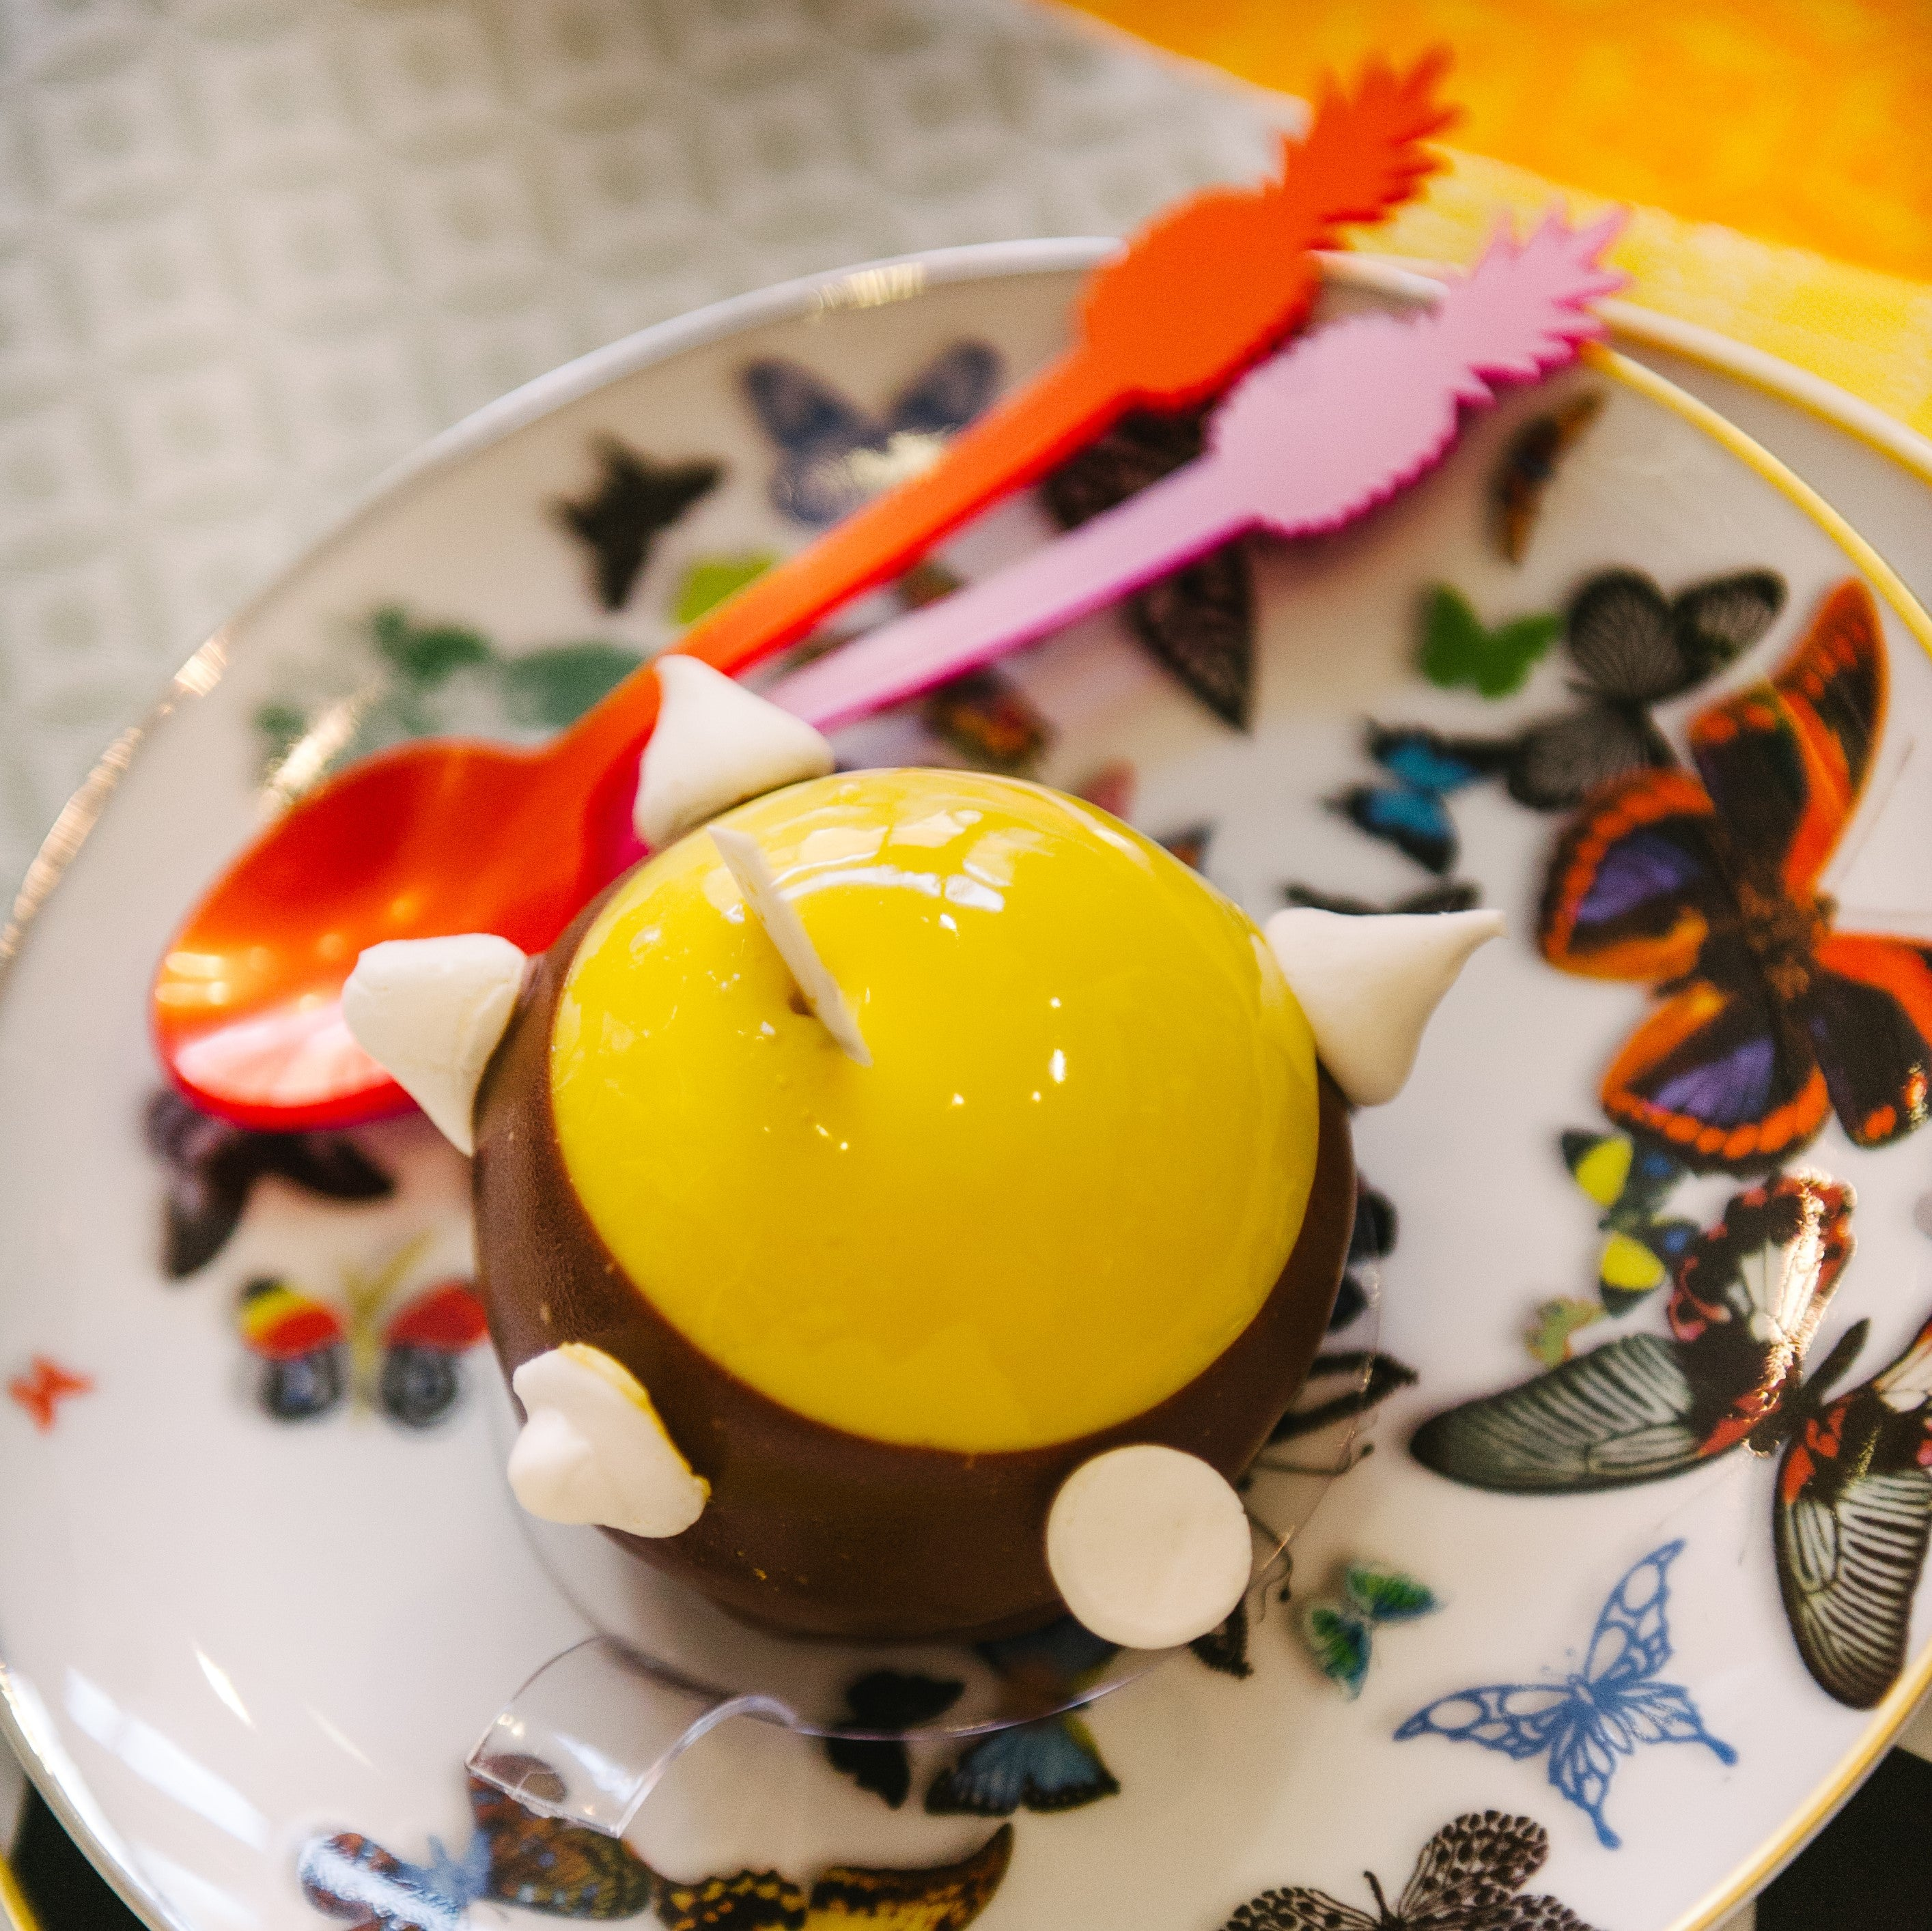 Kalamasi lime & lemon cremeux, Valhrona white chocolate ganache & Speculous spiced cake. Nut fr